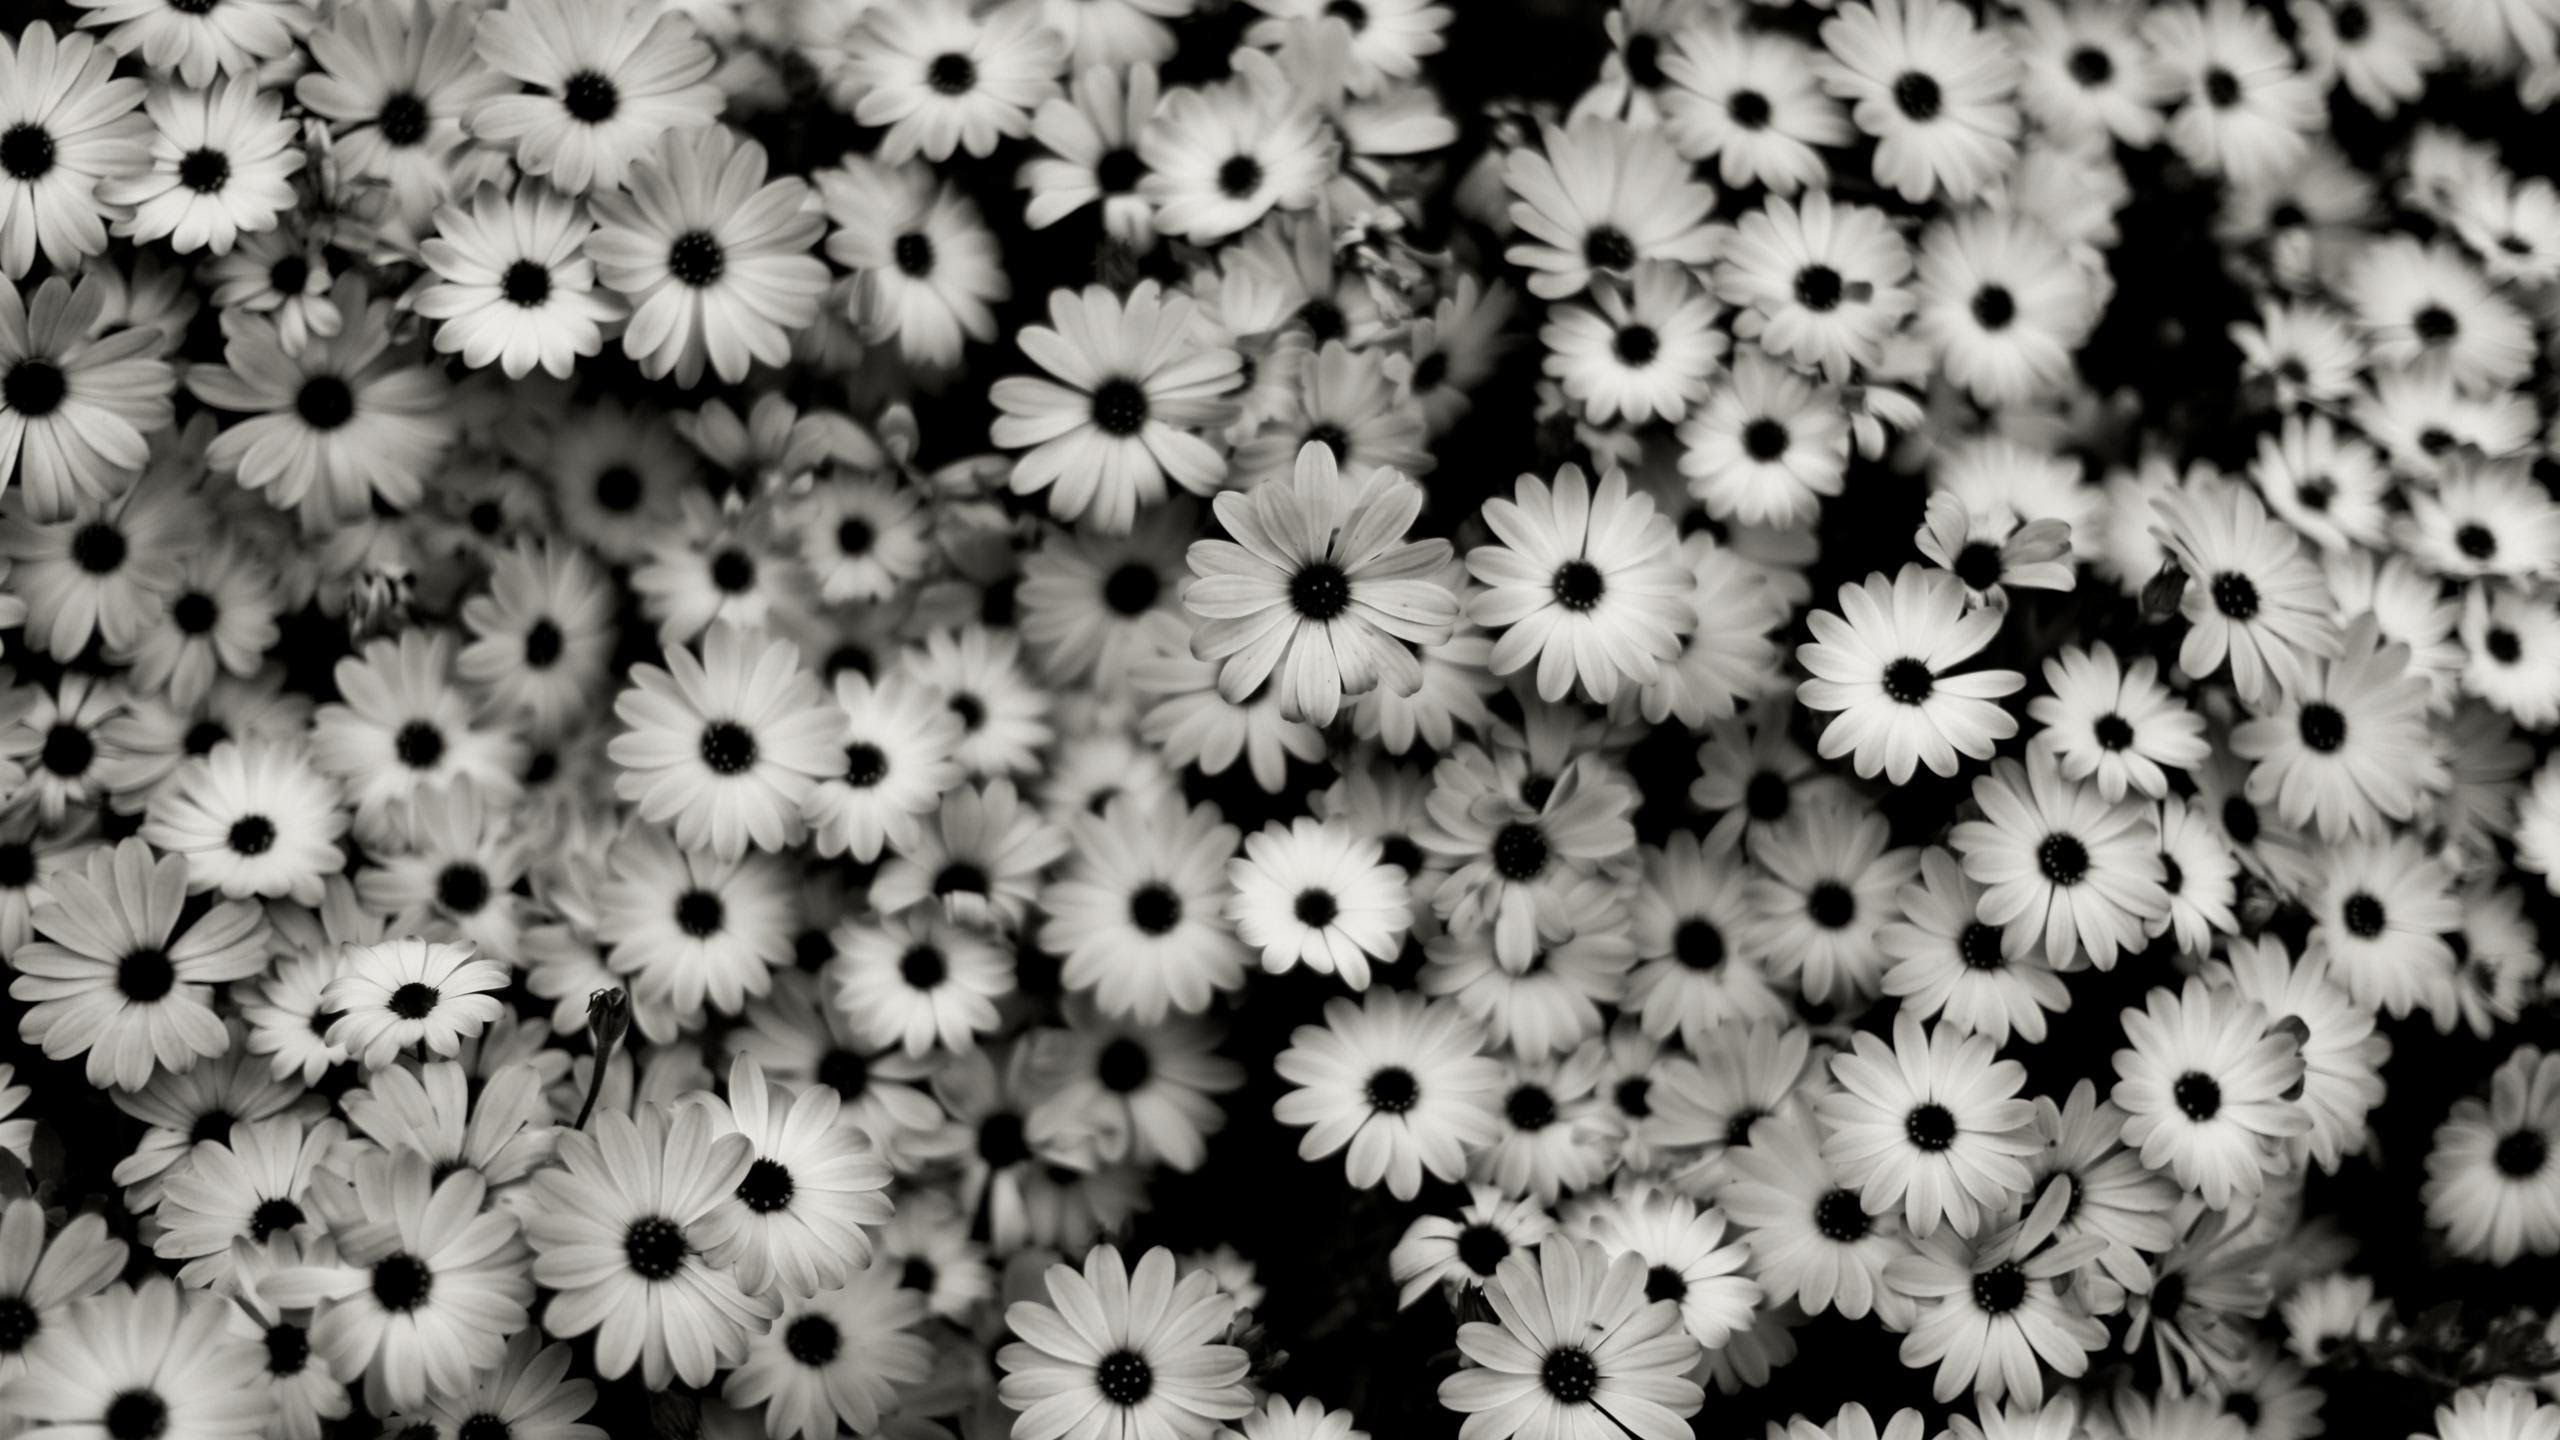 Black And White Vintage Flowers Tumblr 83202 Pixzone Wallpapers